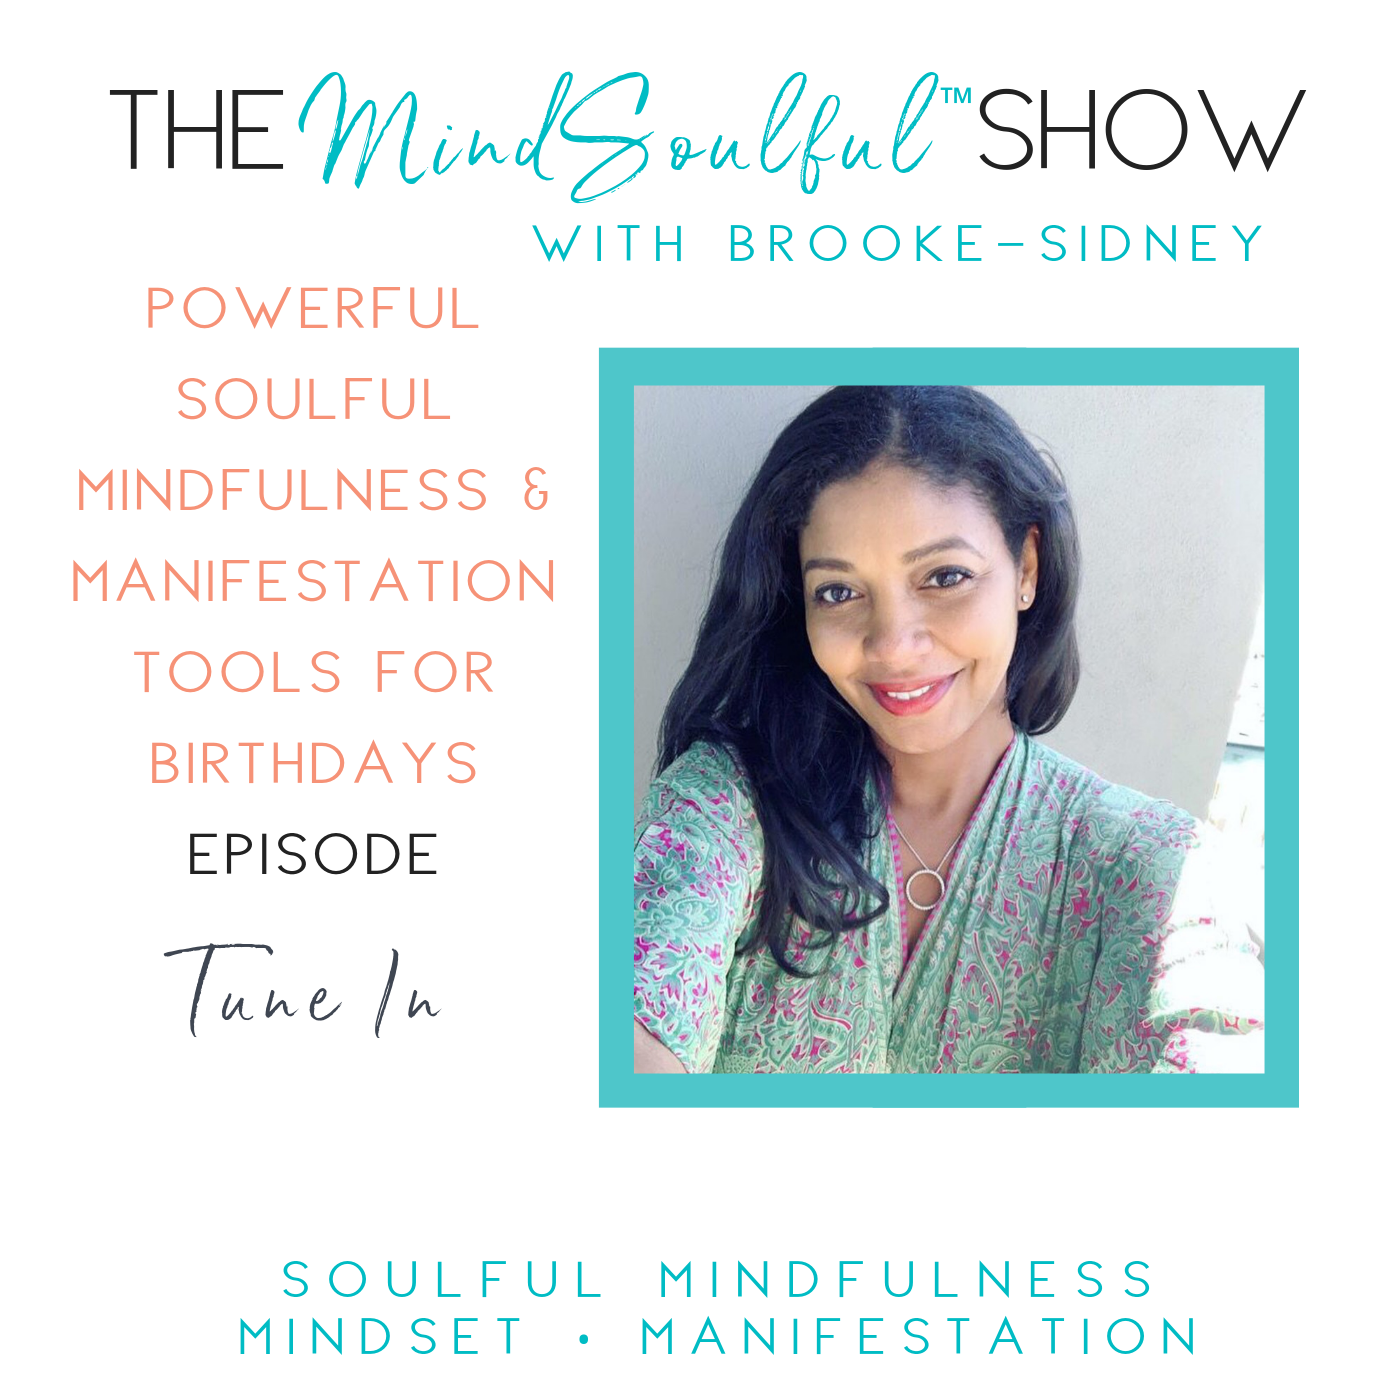 The MindSoulful Show - POWERFUL SOULFUL MINDFULNESS & MANIFESTATION TOOLS FOR BIRTHDAYS.png